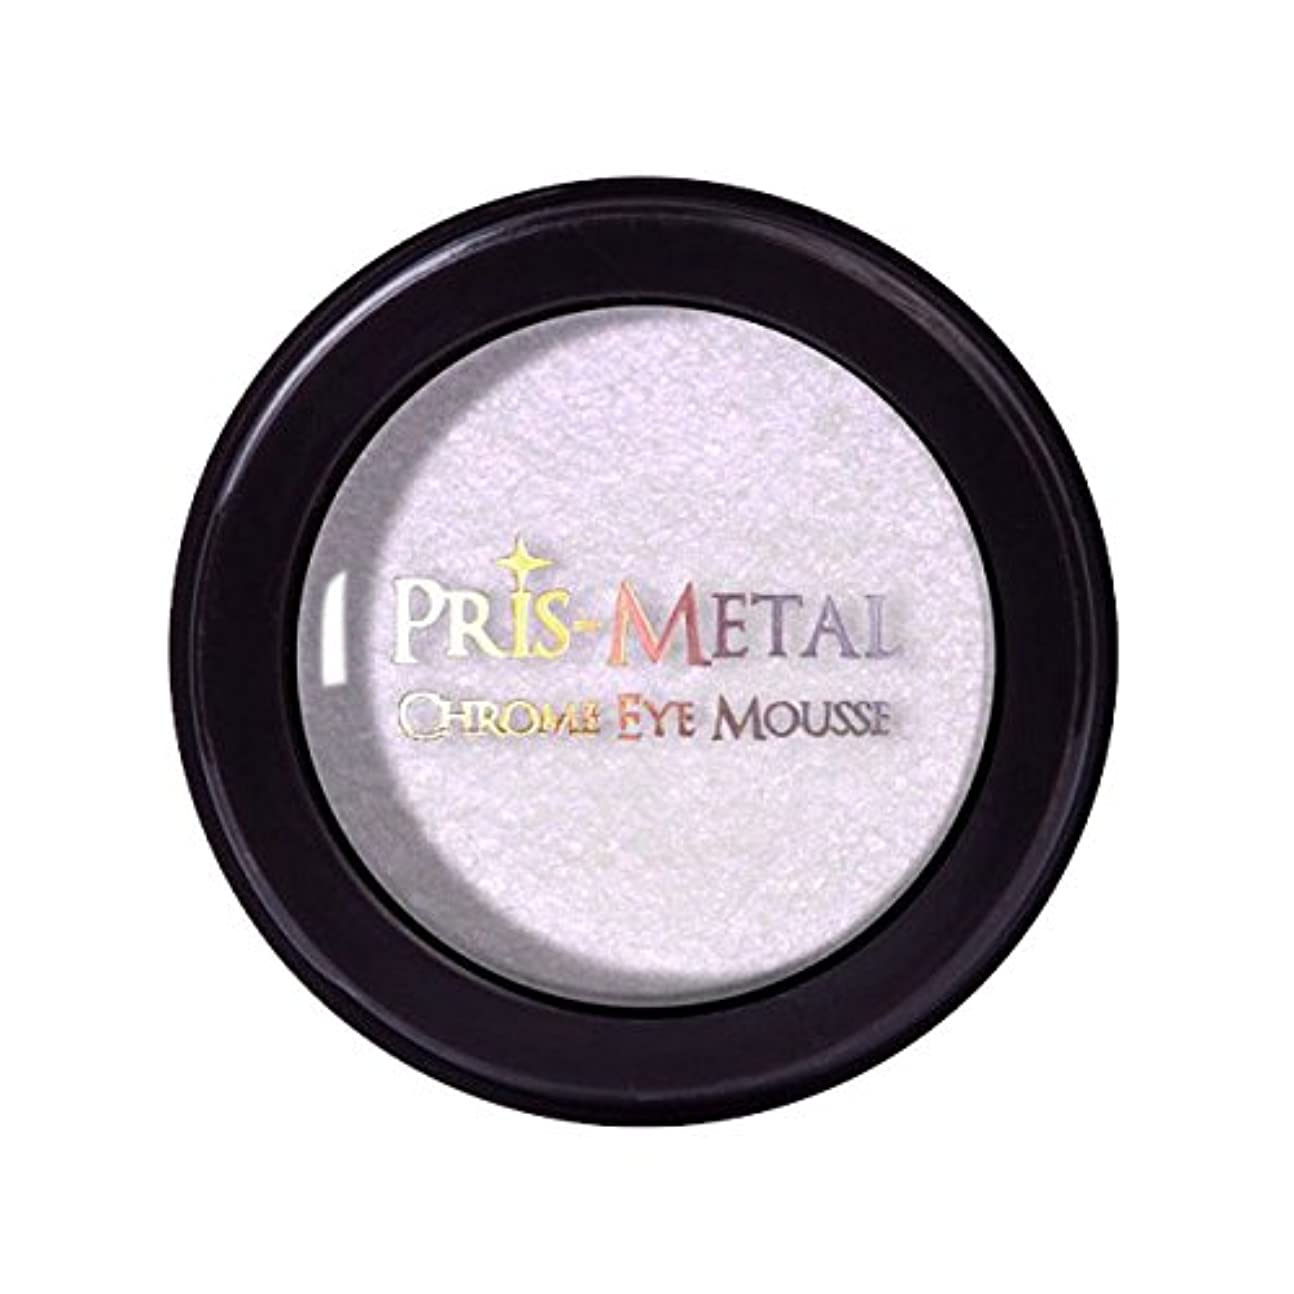 鎮痛剤平和的却下する(3 Pack) J. CAT BEAUTY Pris-Metal Chrome Eye Mousse - Pinky Promise (並行輸入品)